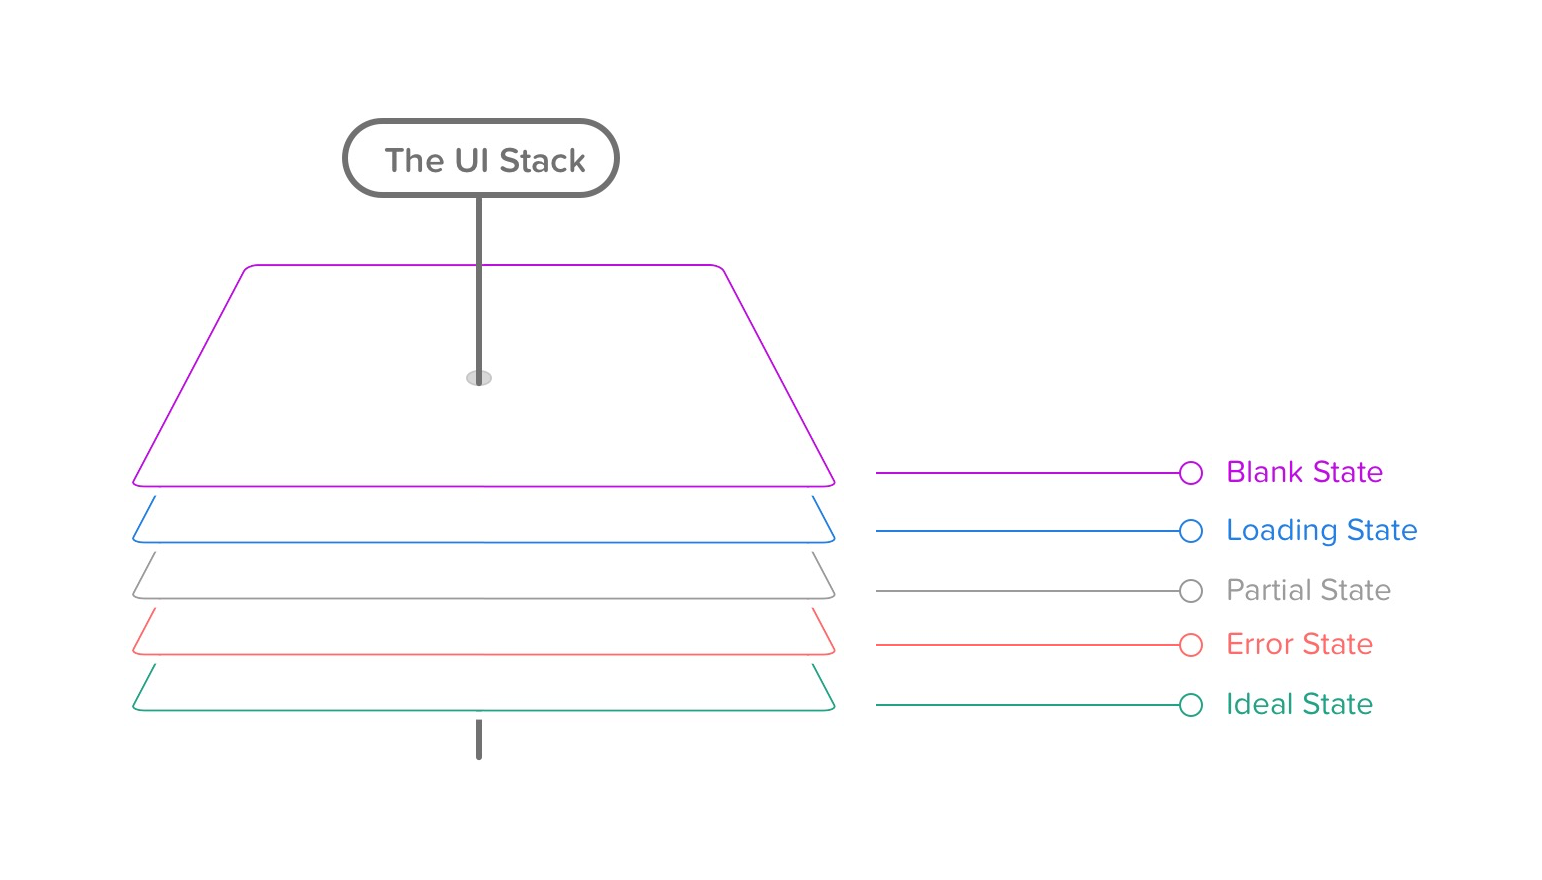 A visual representation of the 5 layers of the UI Stack